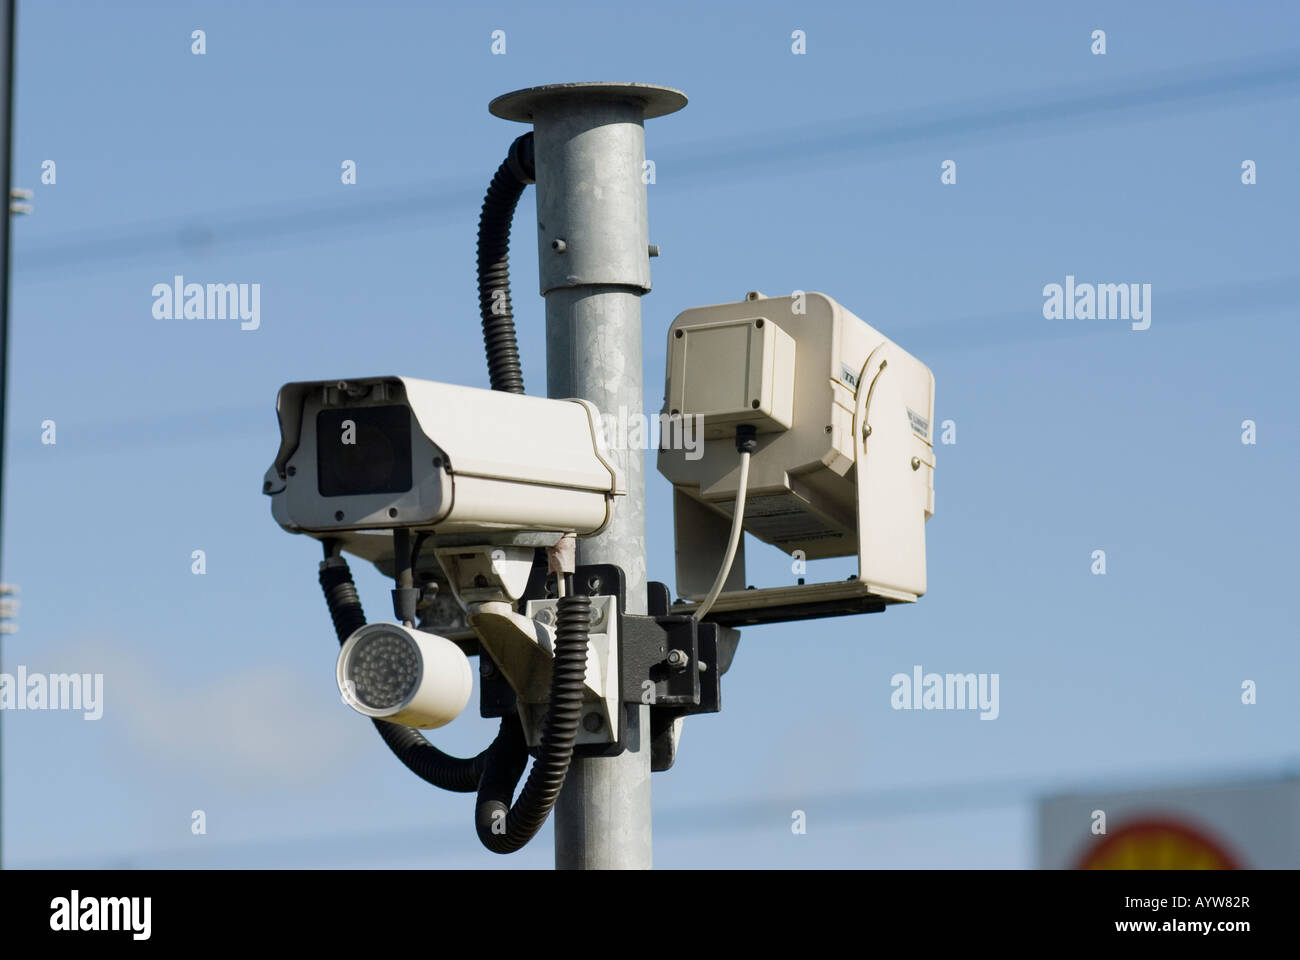 Closed circuit television cameras watch over at a car park at Toddington service station - Stock Image